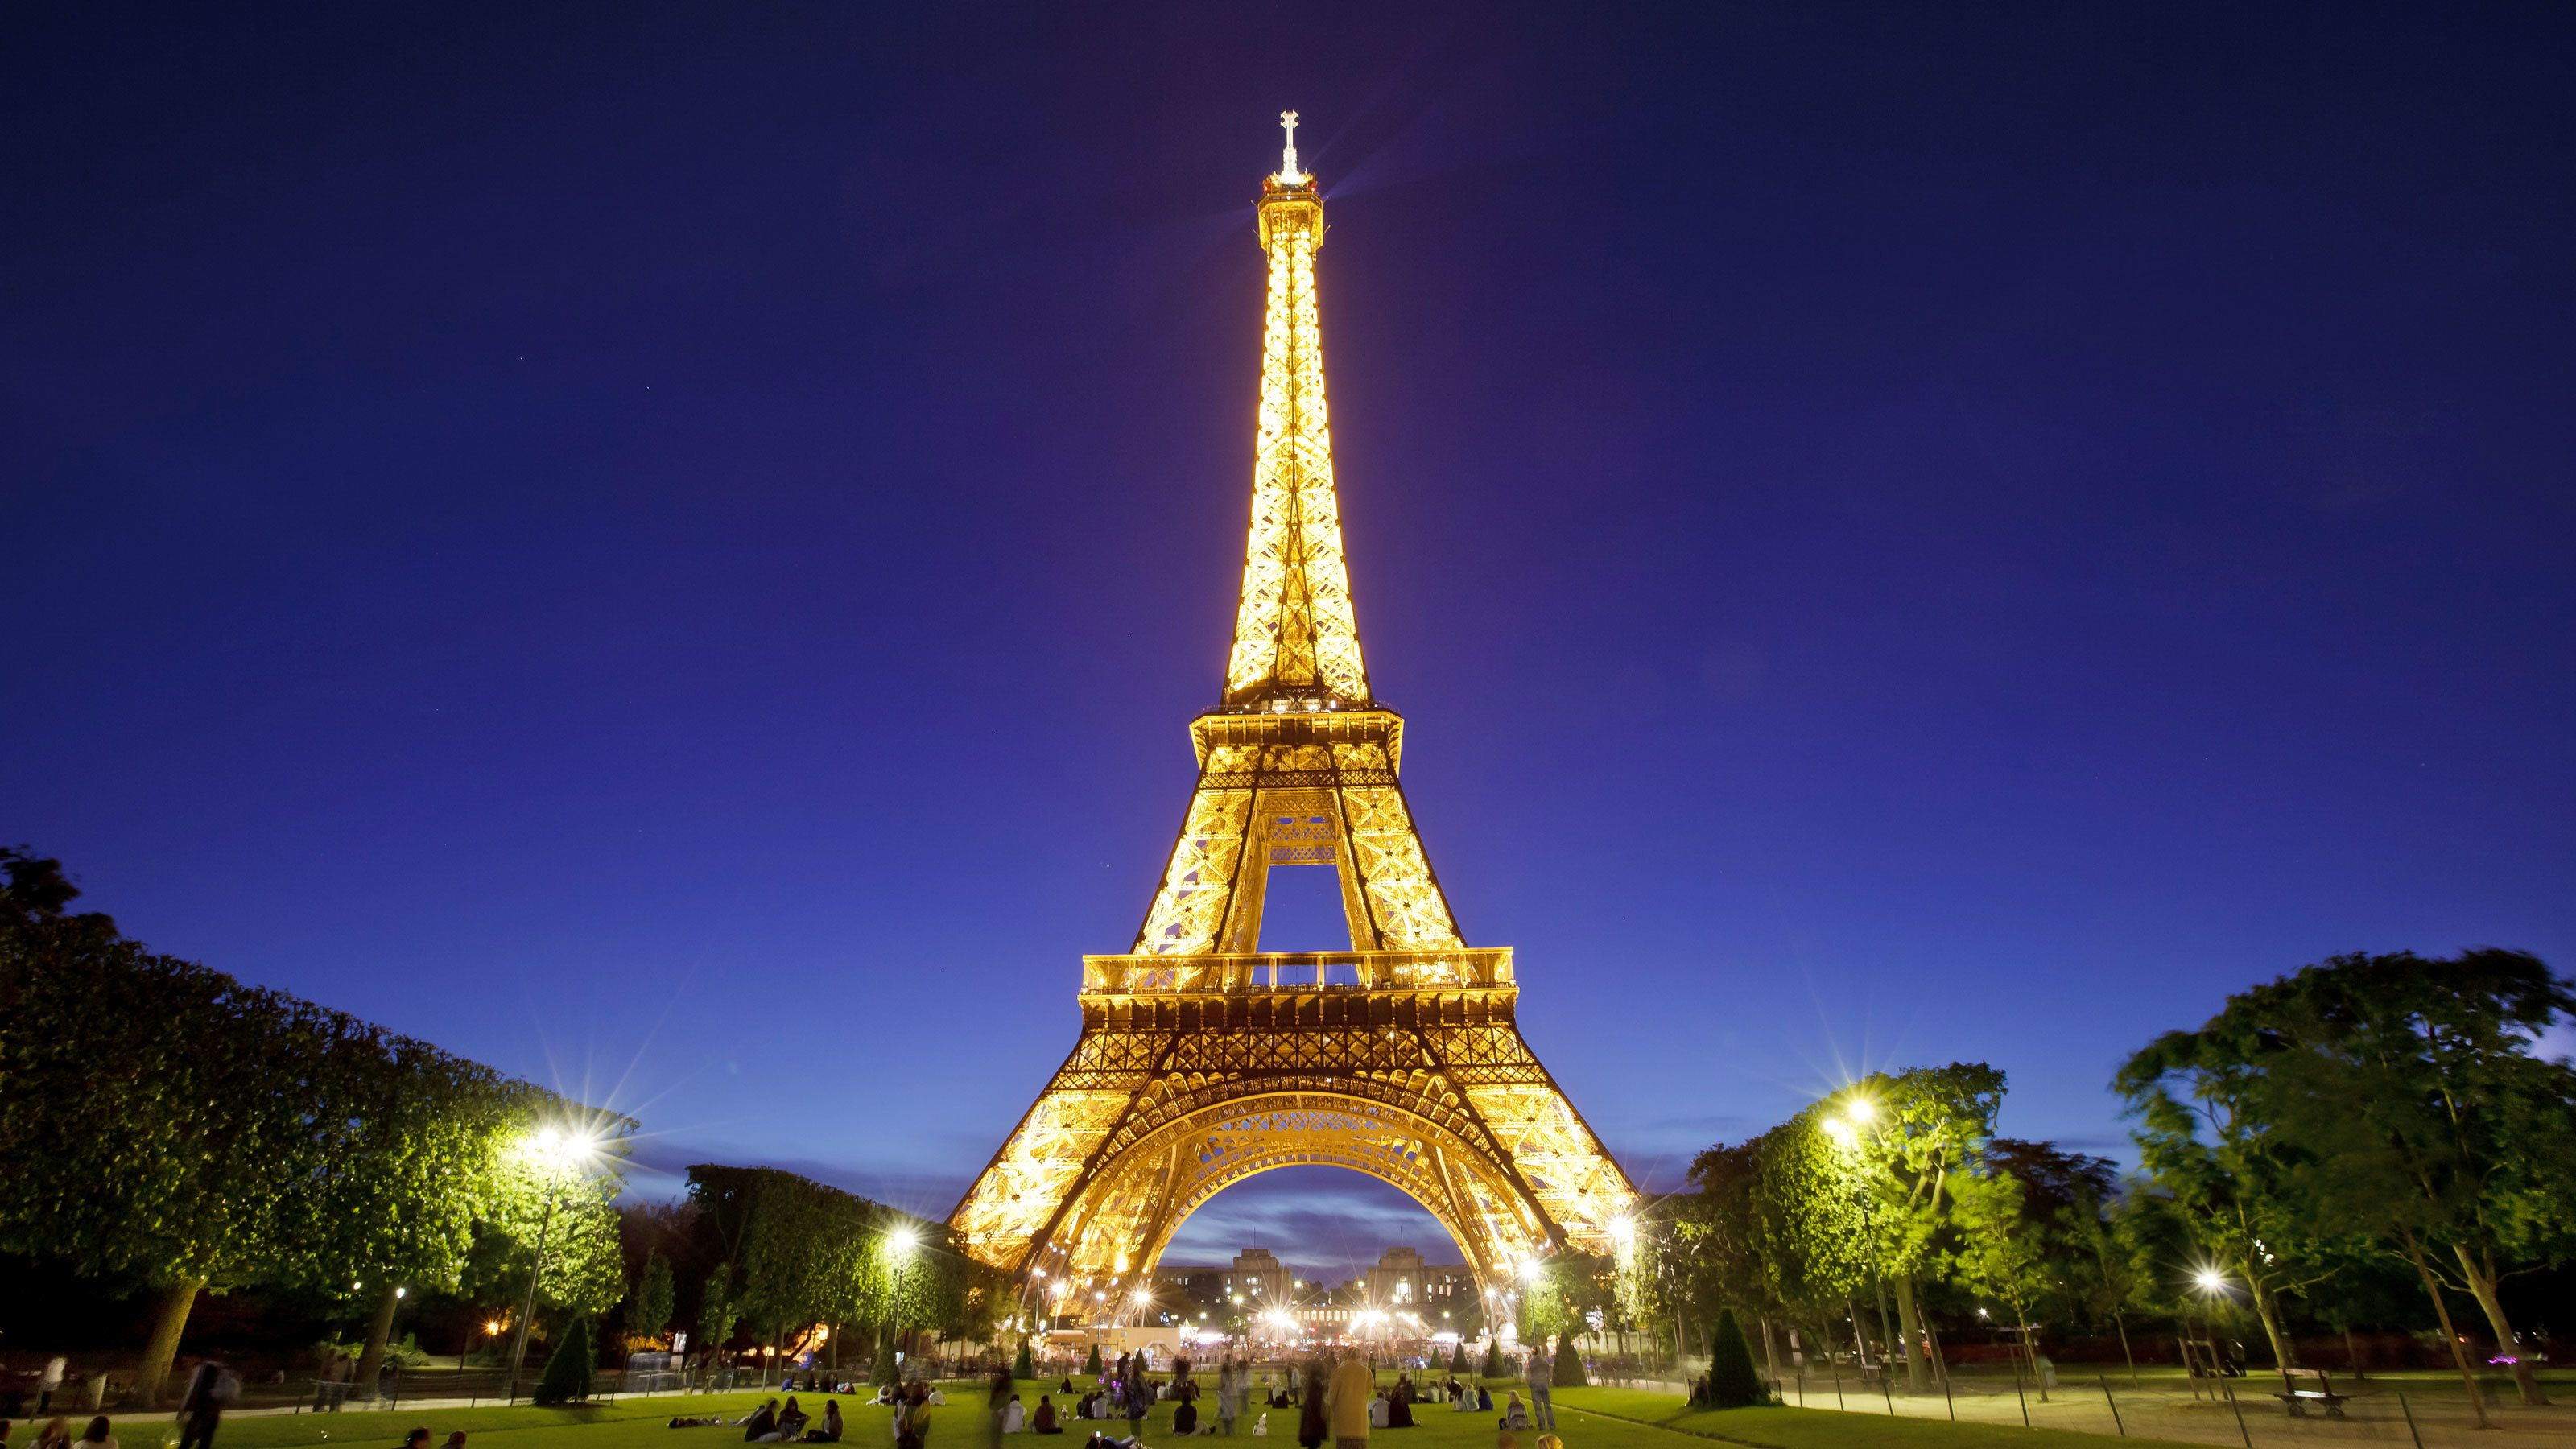 2-Day Paris Tour with Cruise & Admission Tickets from London